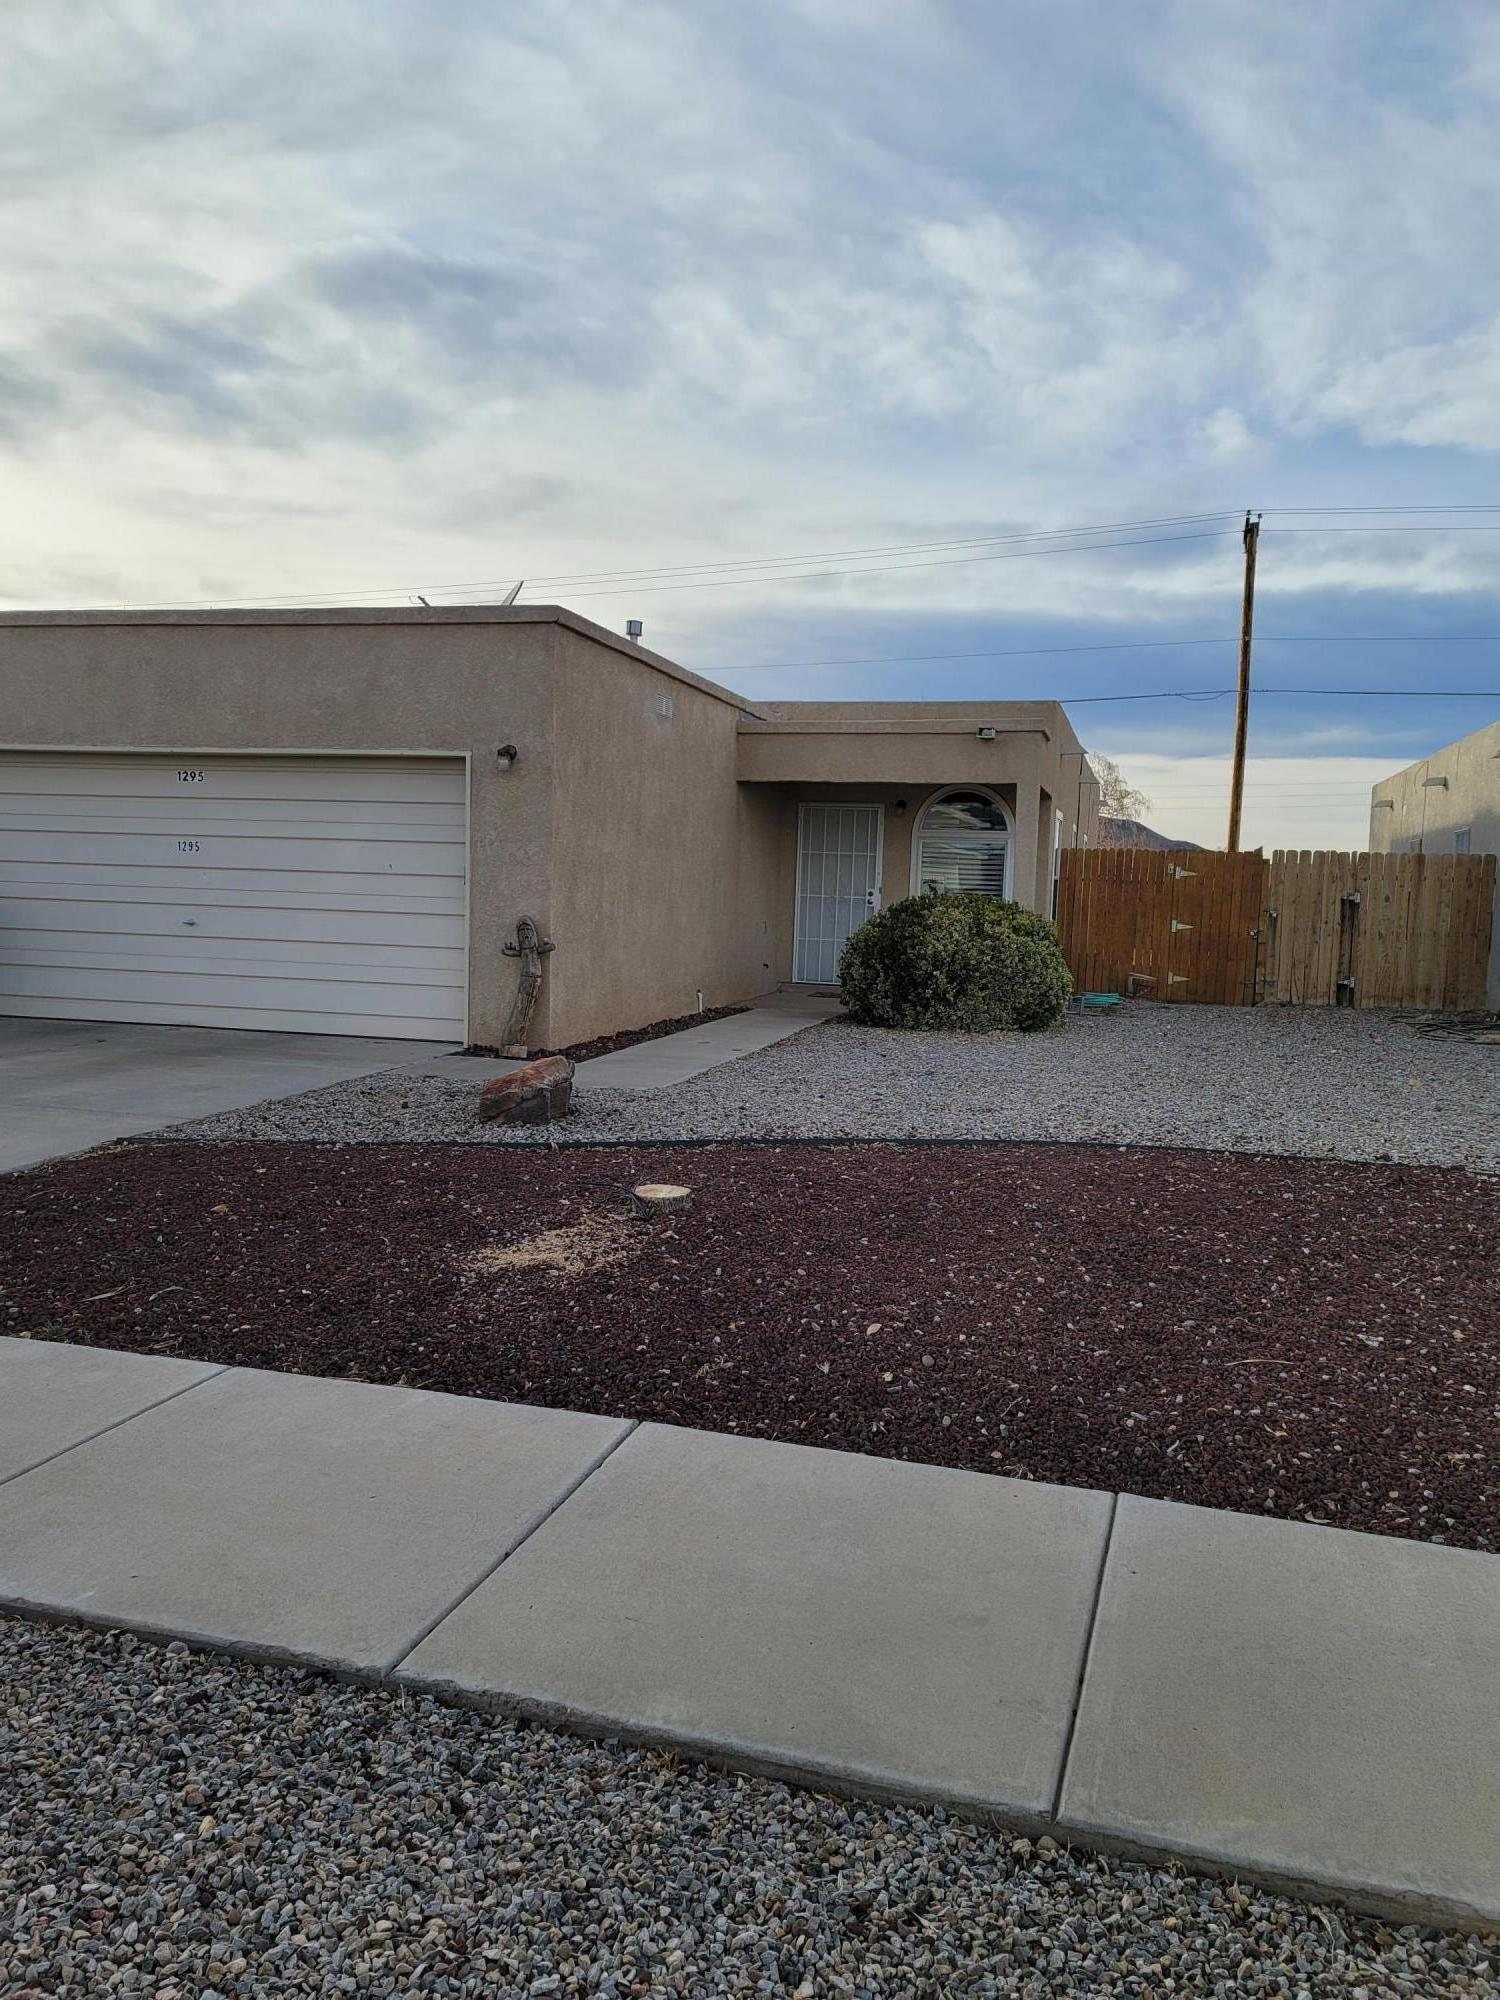 5 MINUTES from I-25!   Convenient to Restaurants, Gas Stations, Walgreens, Home Depot etc.  Darling 3 bedroom Single Story townhome with 2 full bathrooms.  Front yard is low, low maintenance/ rock landscaping and backyard has grassy area for children and pets.  Sliding glass door off of dining area/ kitchen opens to a small Covered Patio for Summer BB-Qs or Sunday morning breakfasts.  Washer, Dryer and Refrigerator convey with acceptable offer.